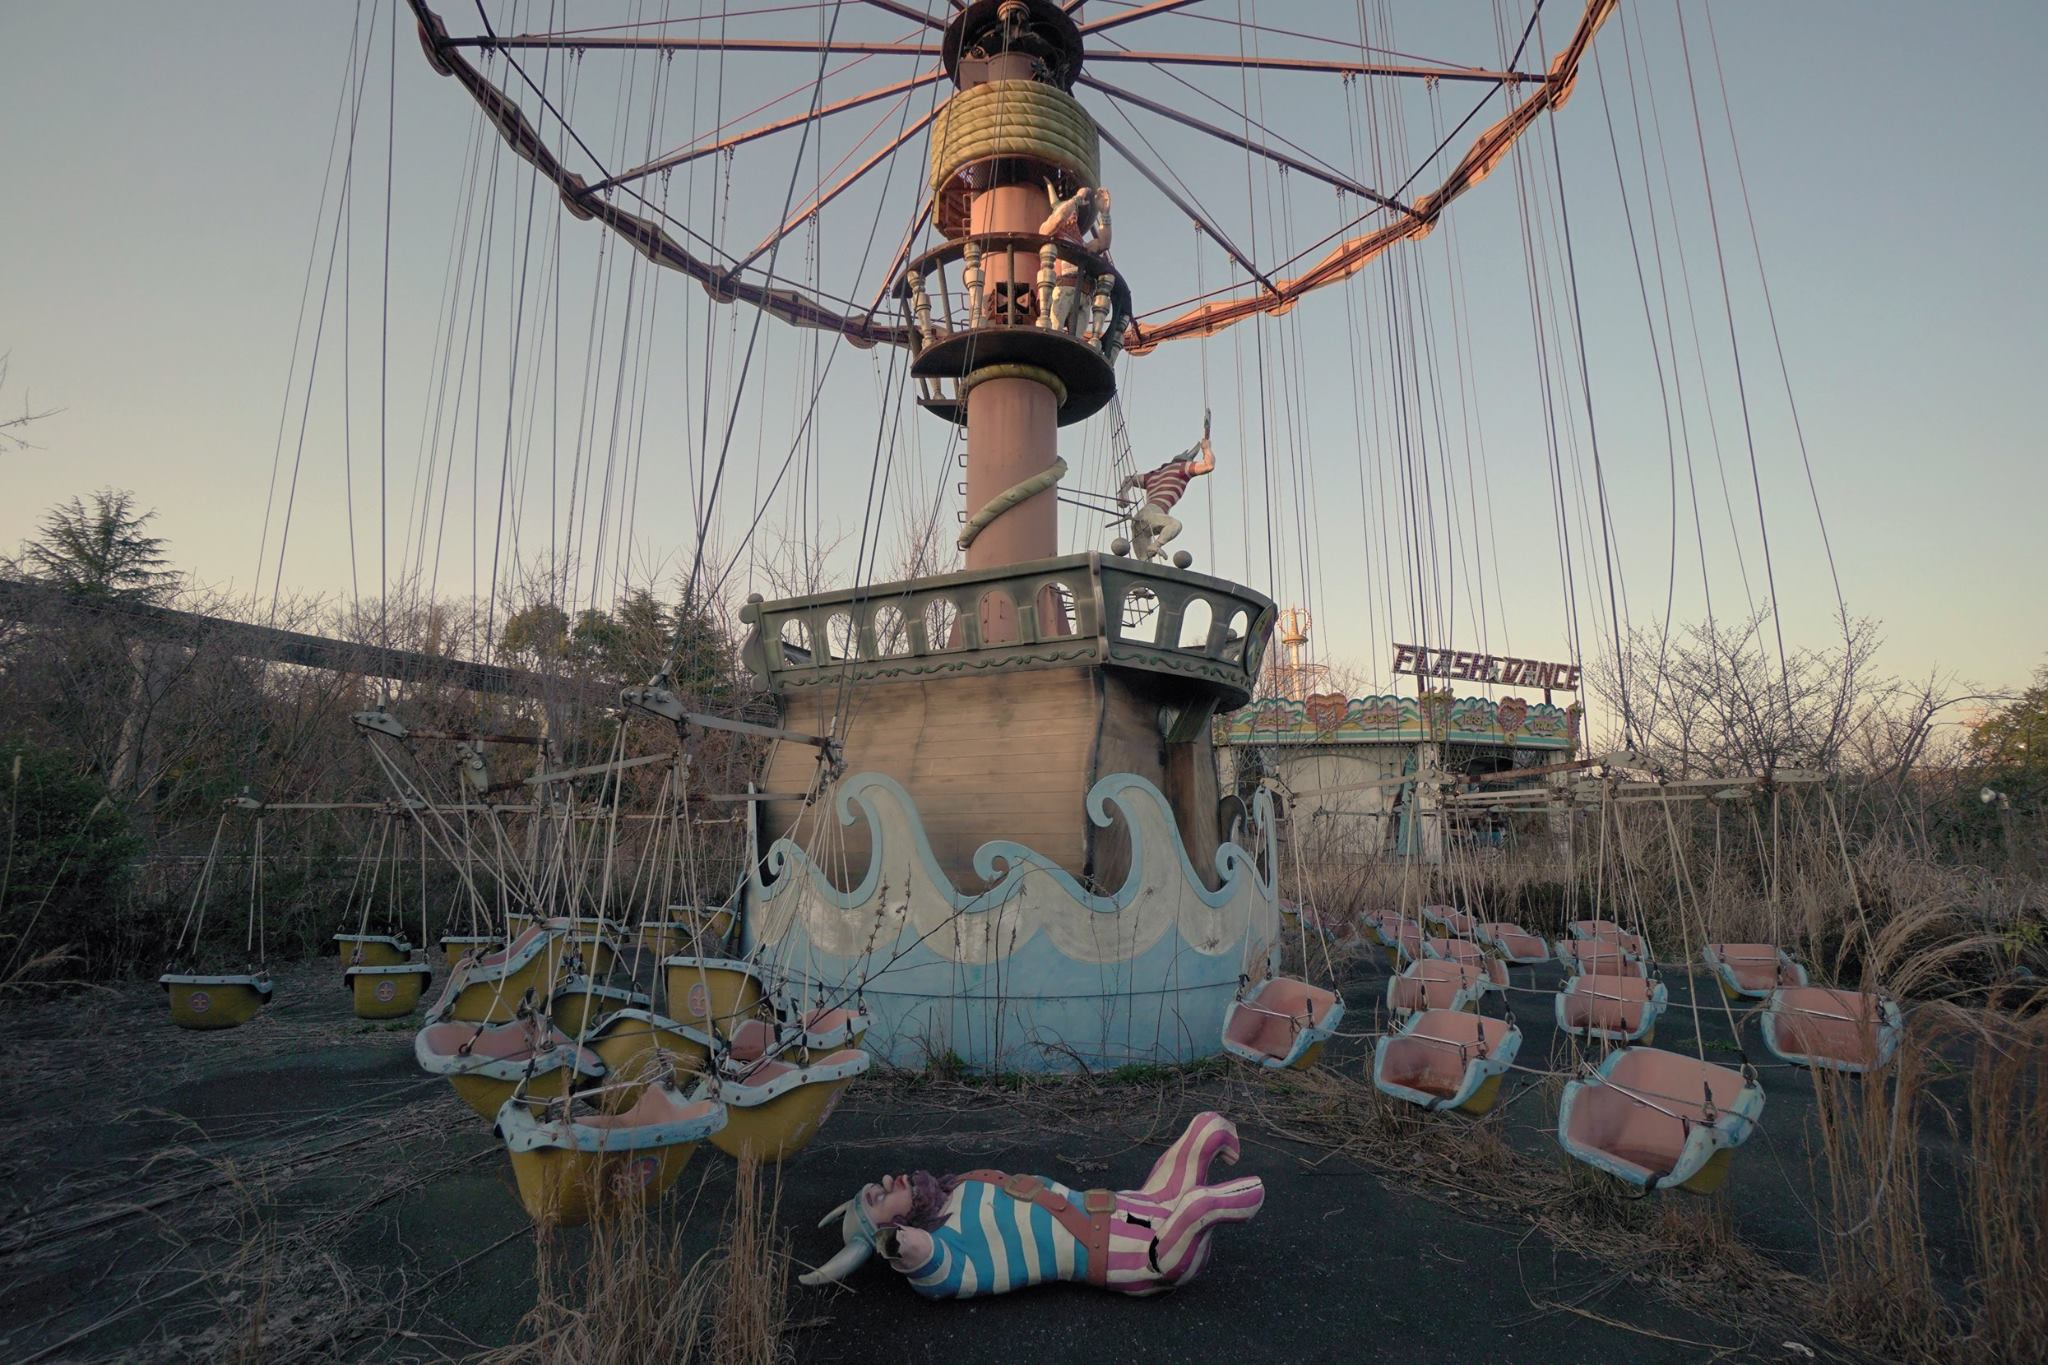 Nara Dreamland - The forbidden journey